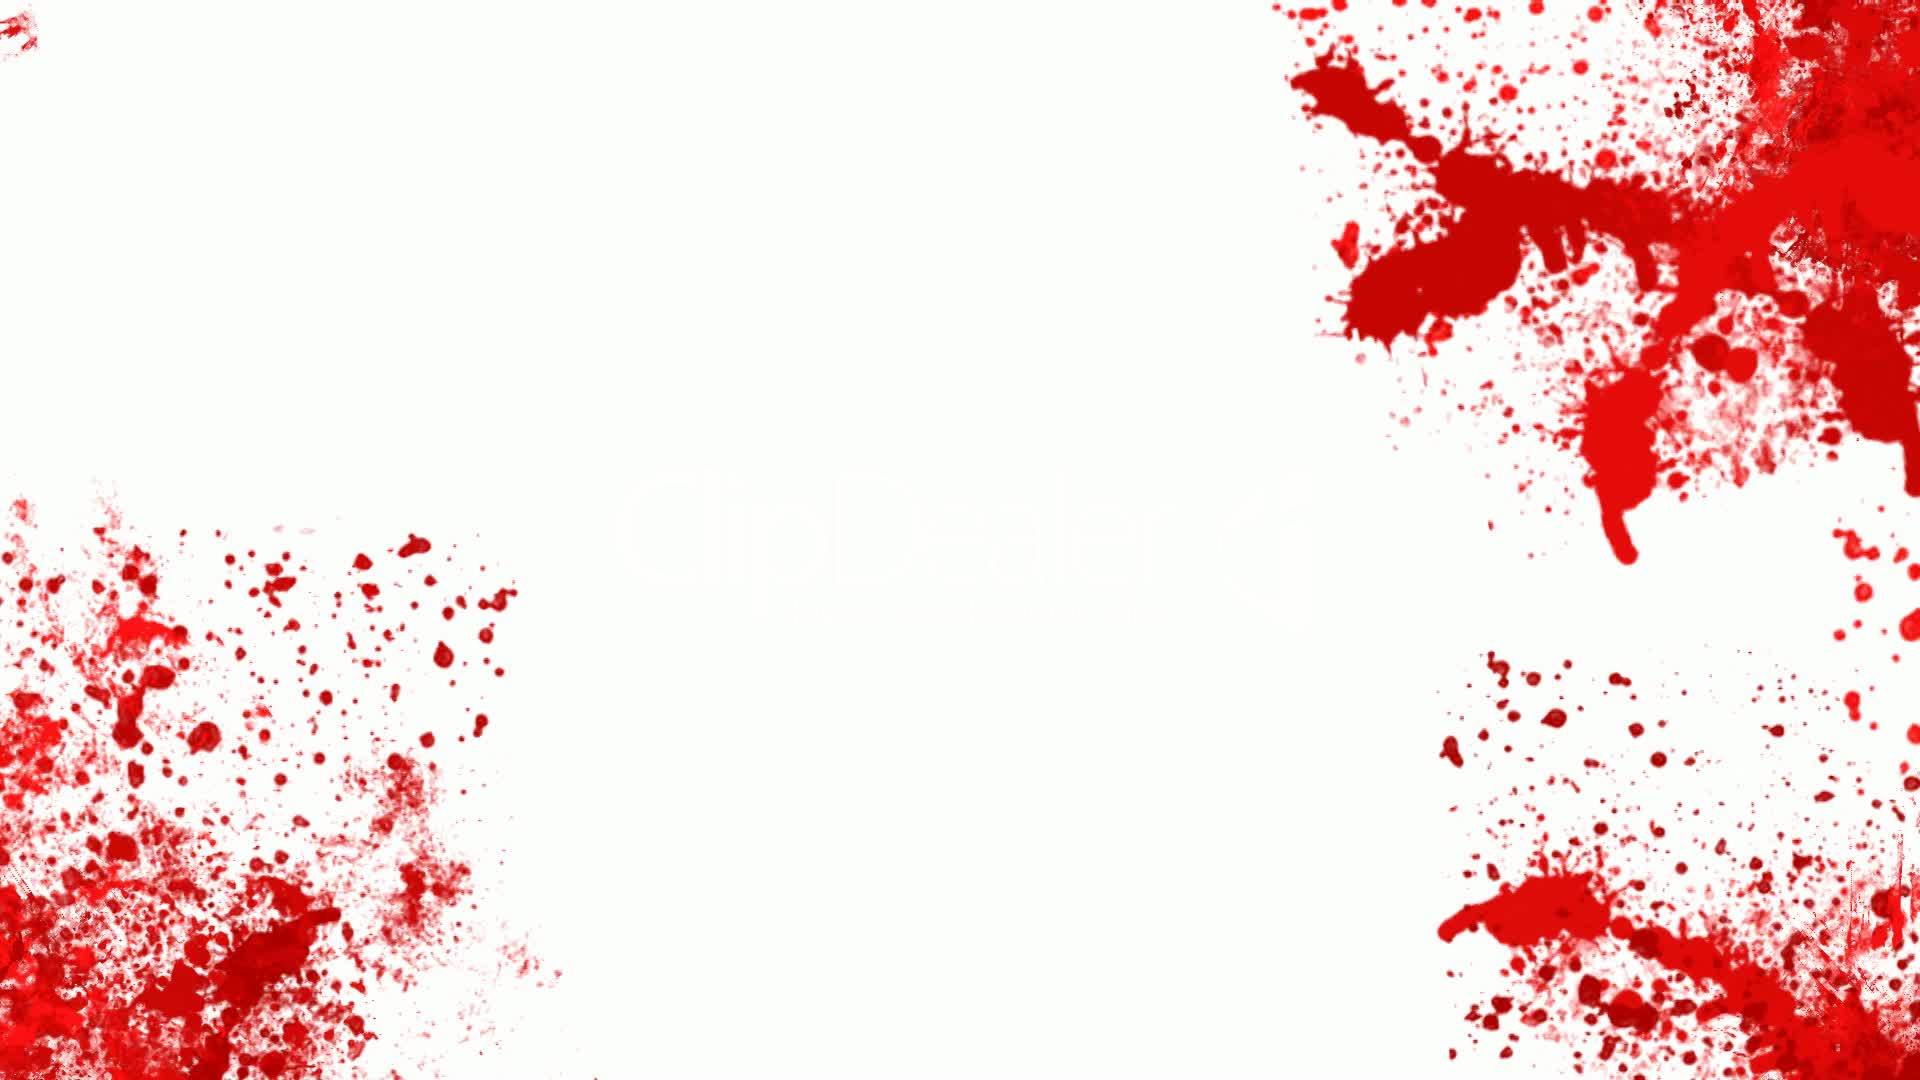 Blood splashes: Royalty-free video and stock footage